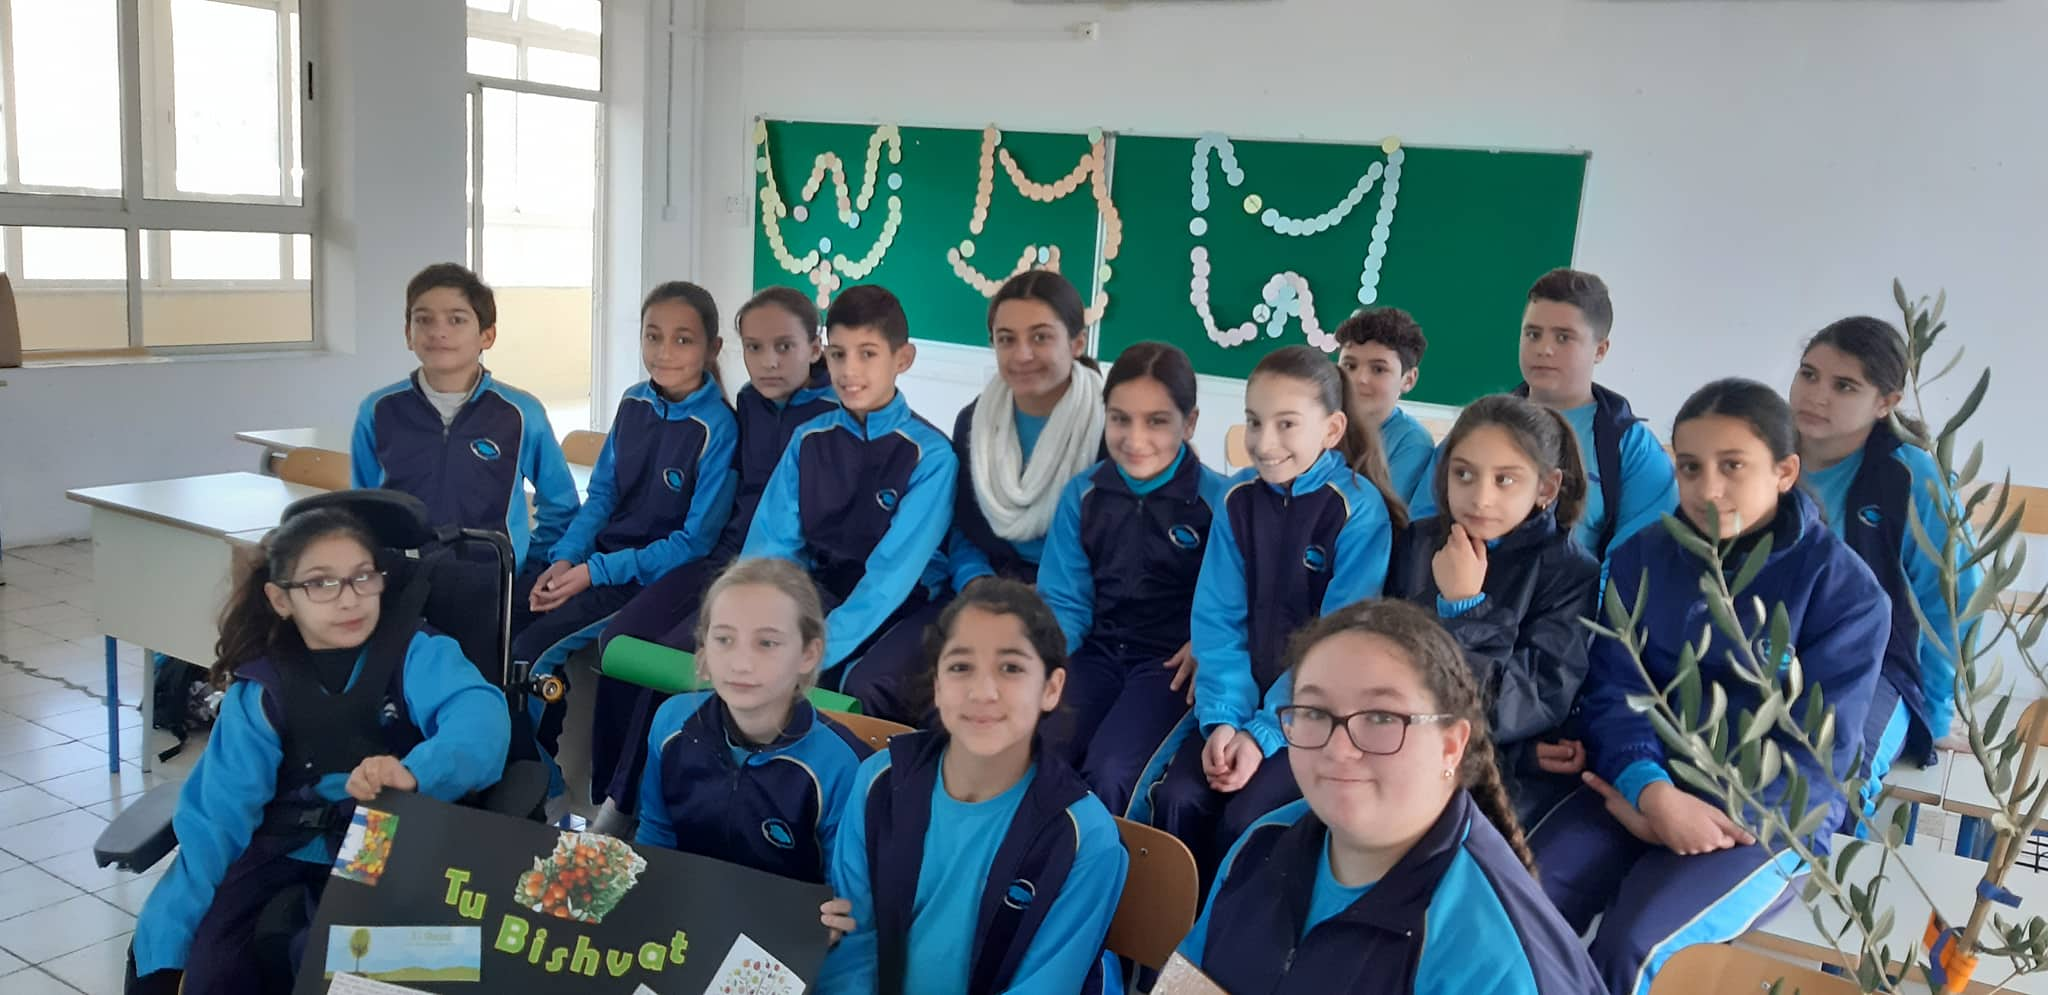 GLOBE students at Gozo College Middle School (Victoria, Gozo, Malta)